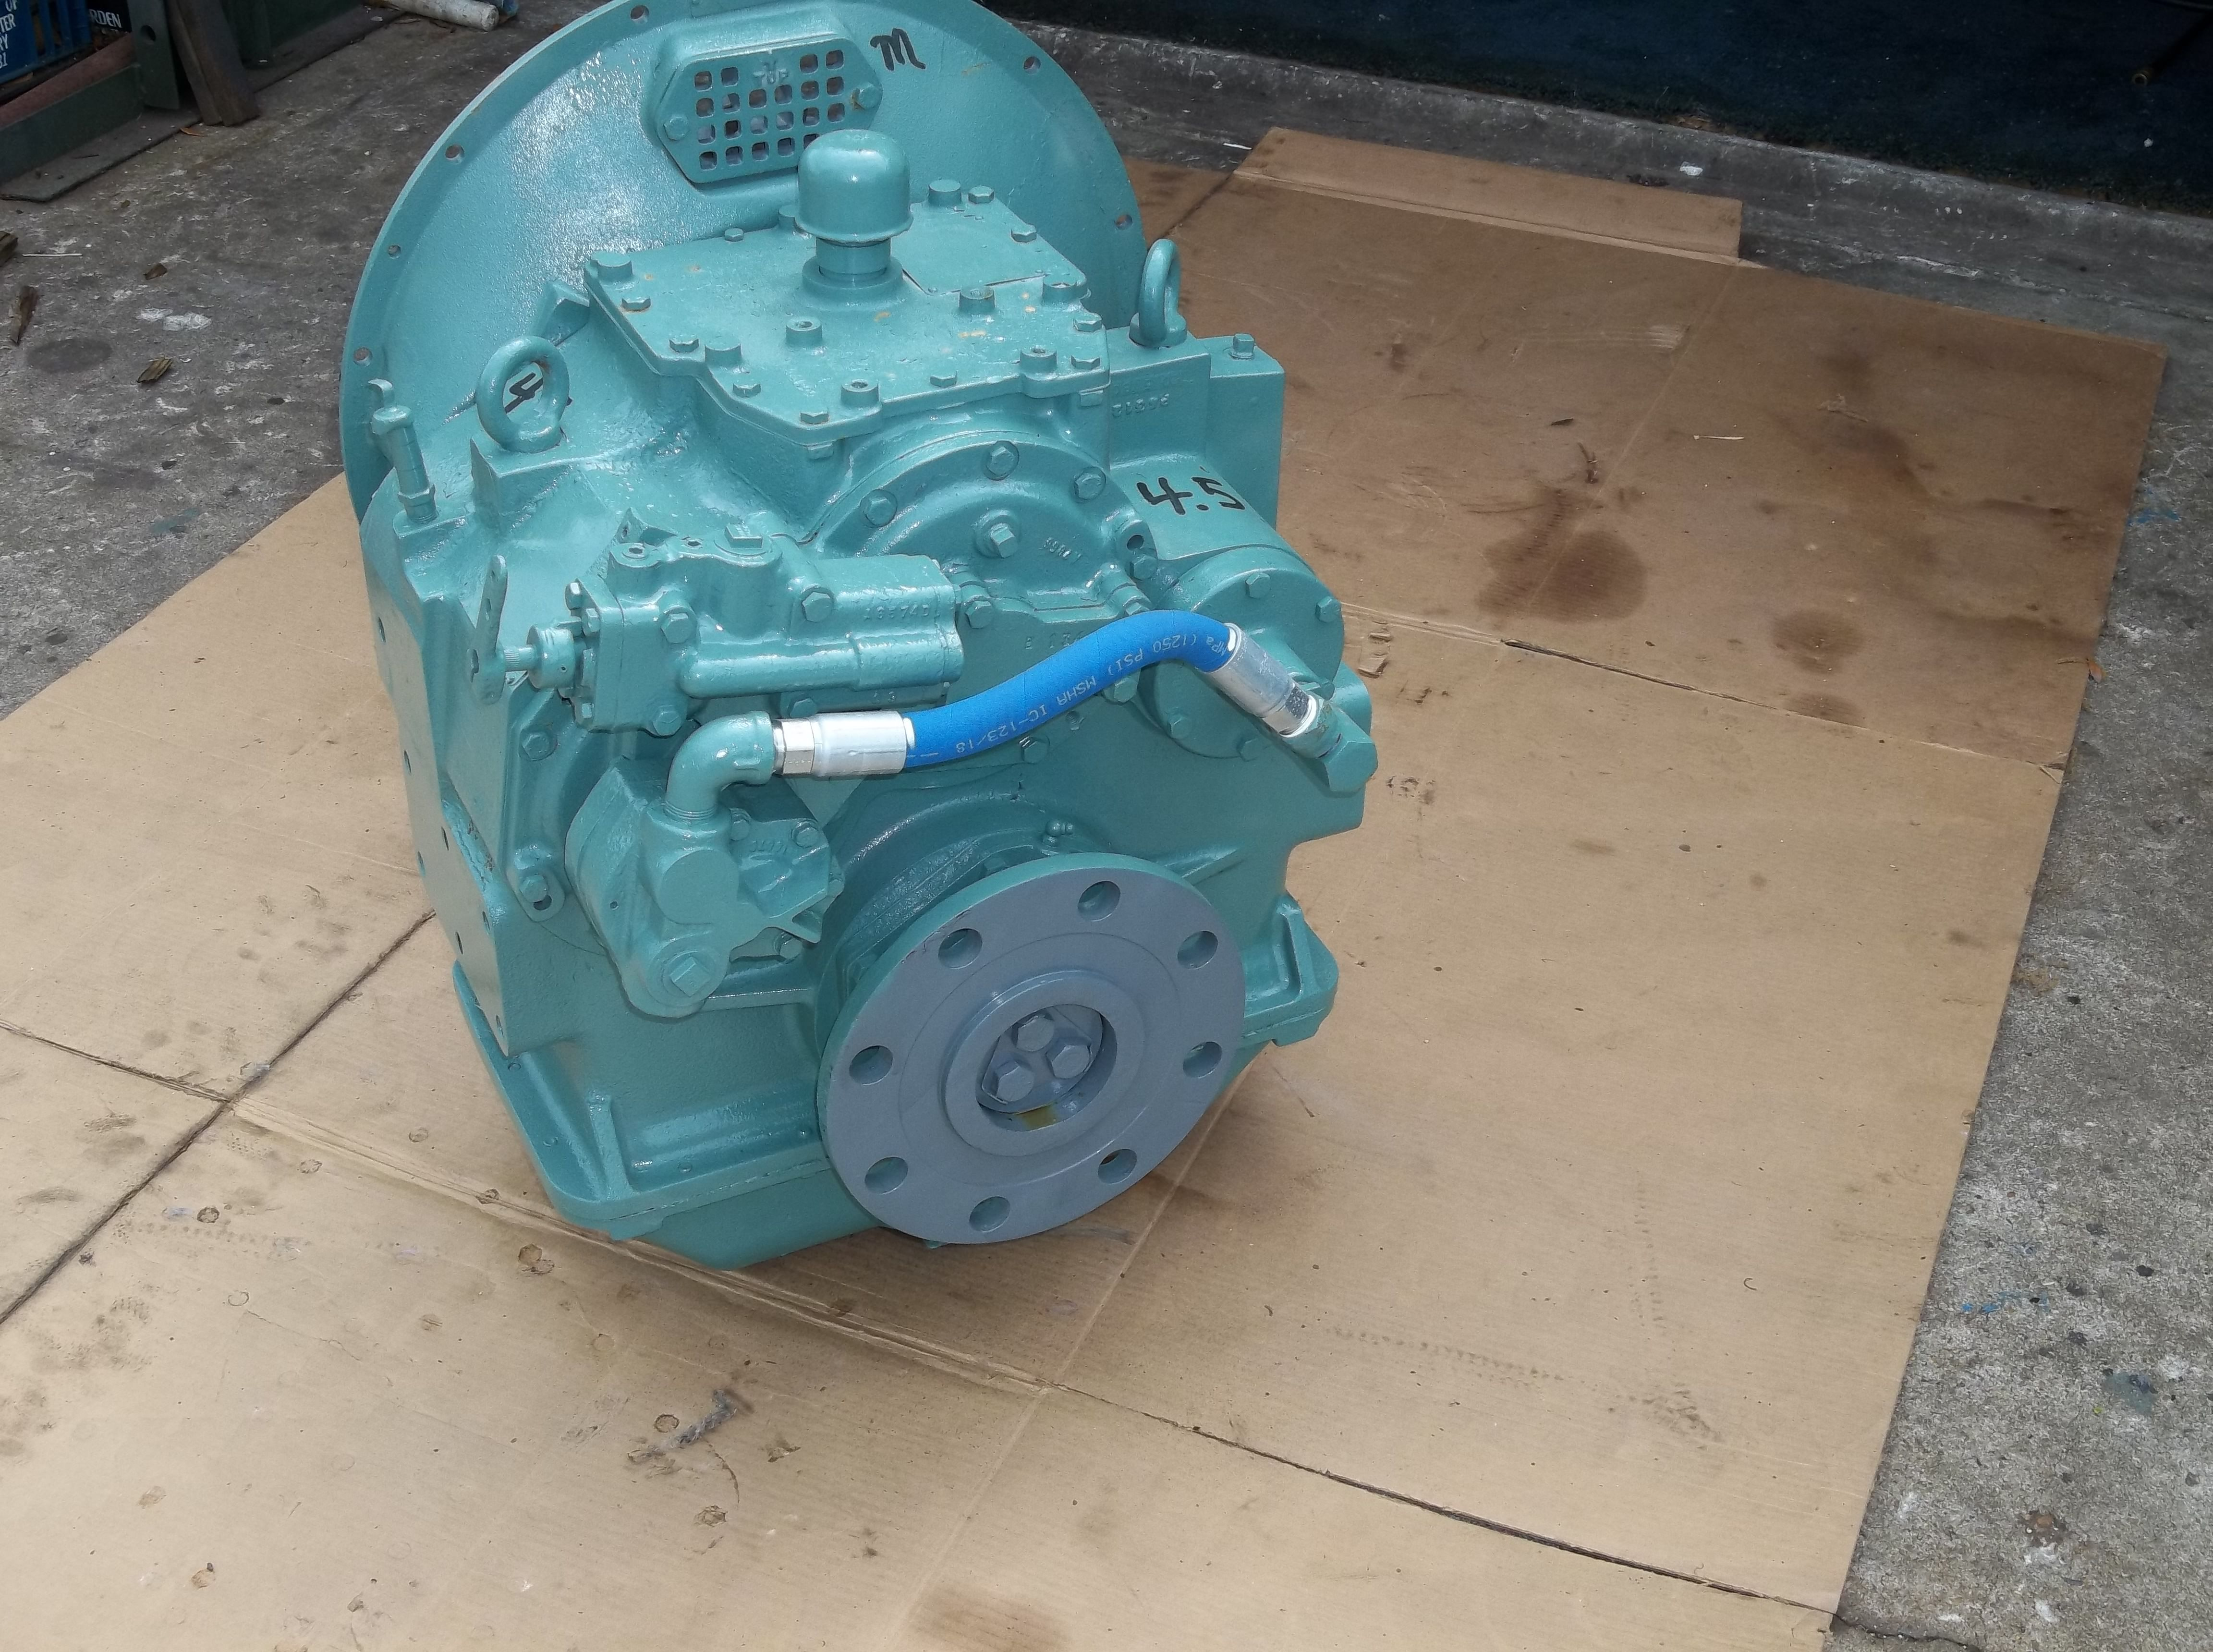 MG509 Straight output rebuilt marine Trans